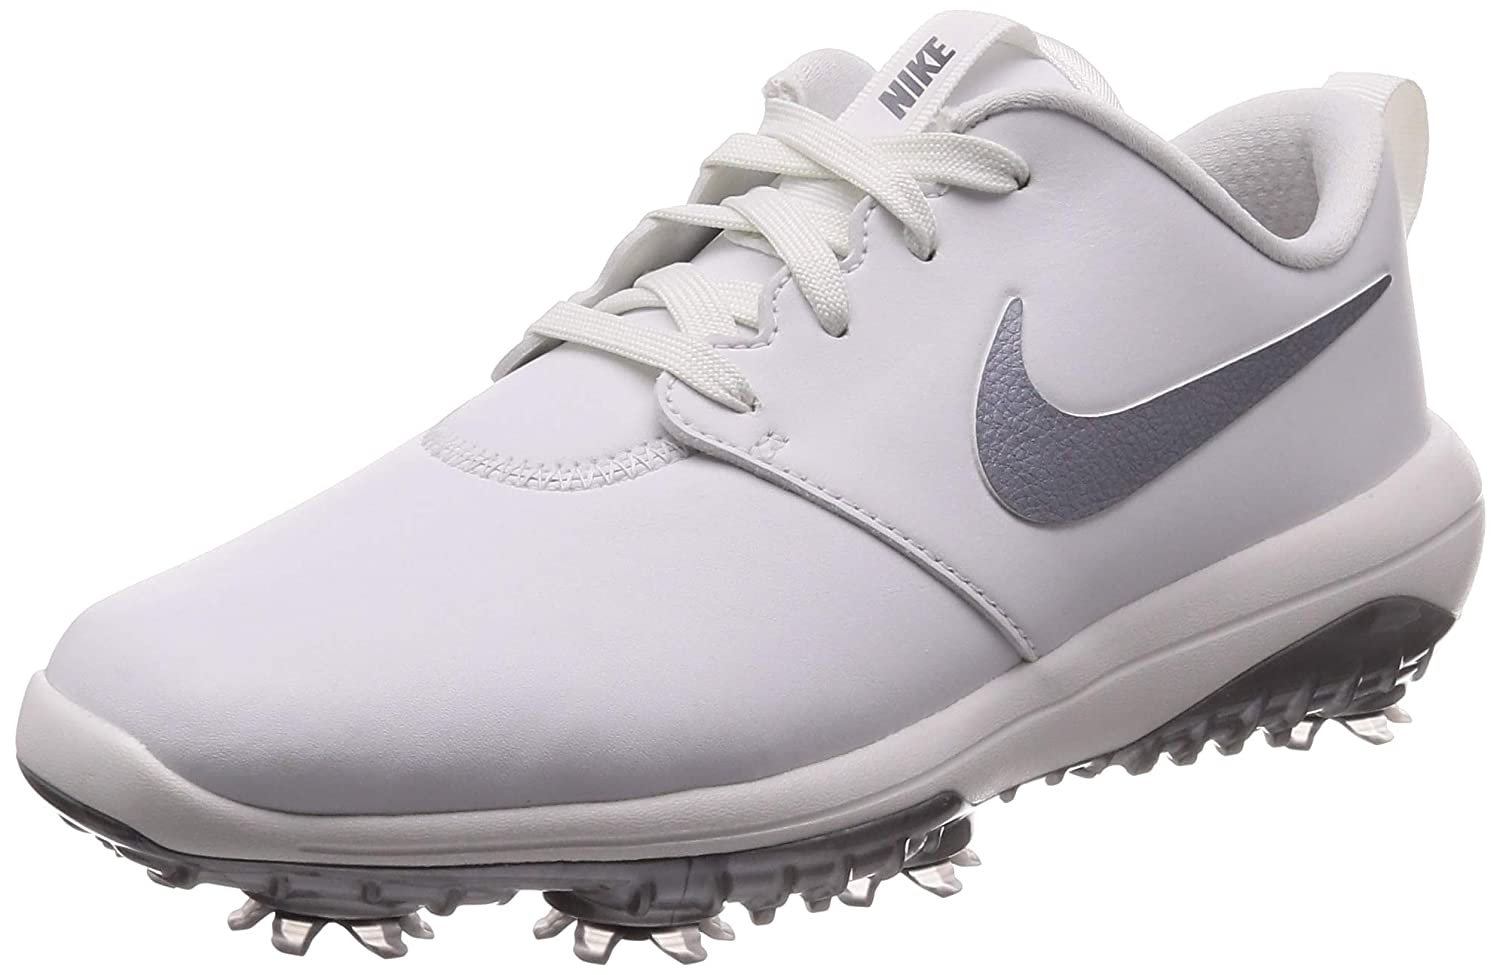 7c33107901941 Amazon.com  Nike Women s Roshe G Tour Golf Shoes  Shoes